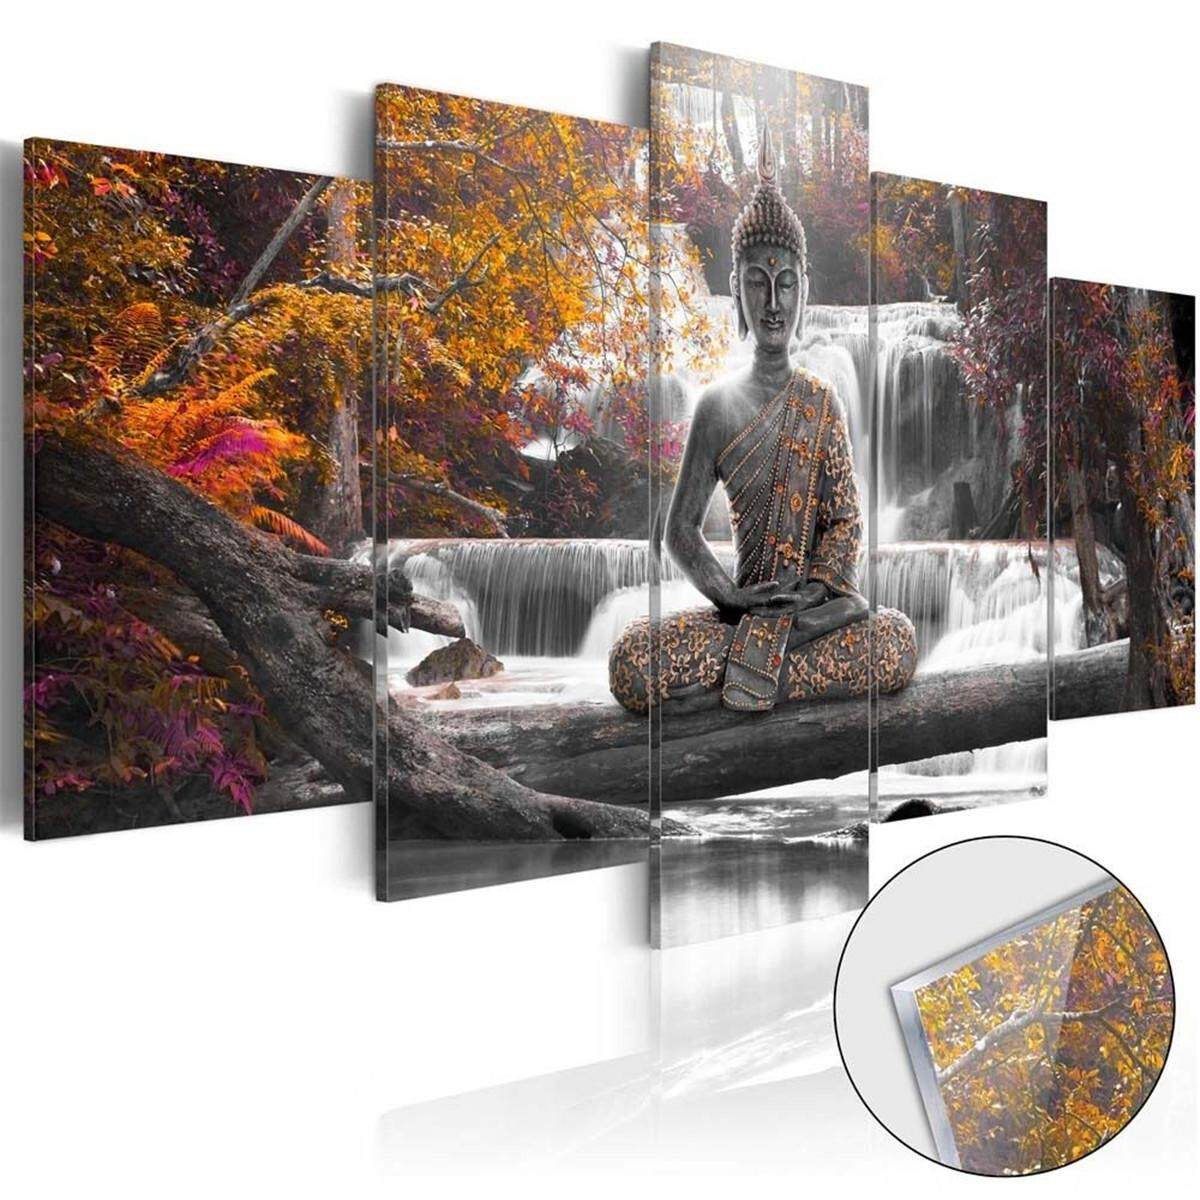 5x Buddha Zen Landscape Painting Canvas Print Modern Picture Wall Art Decor Home #yellow with frame - intl